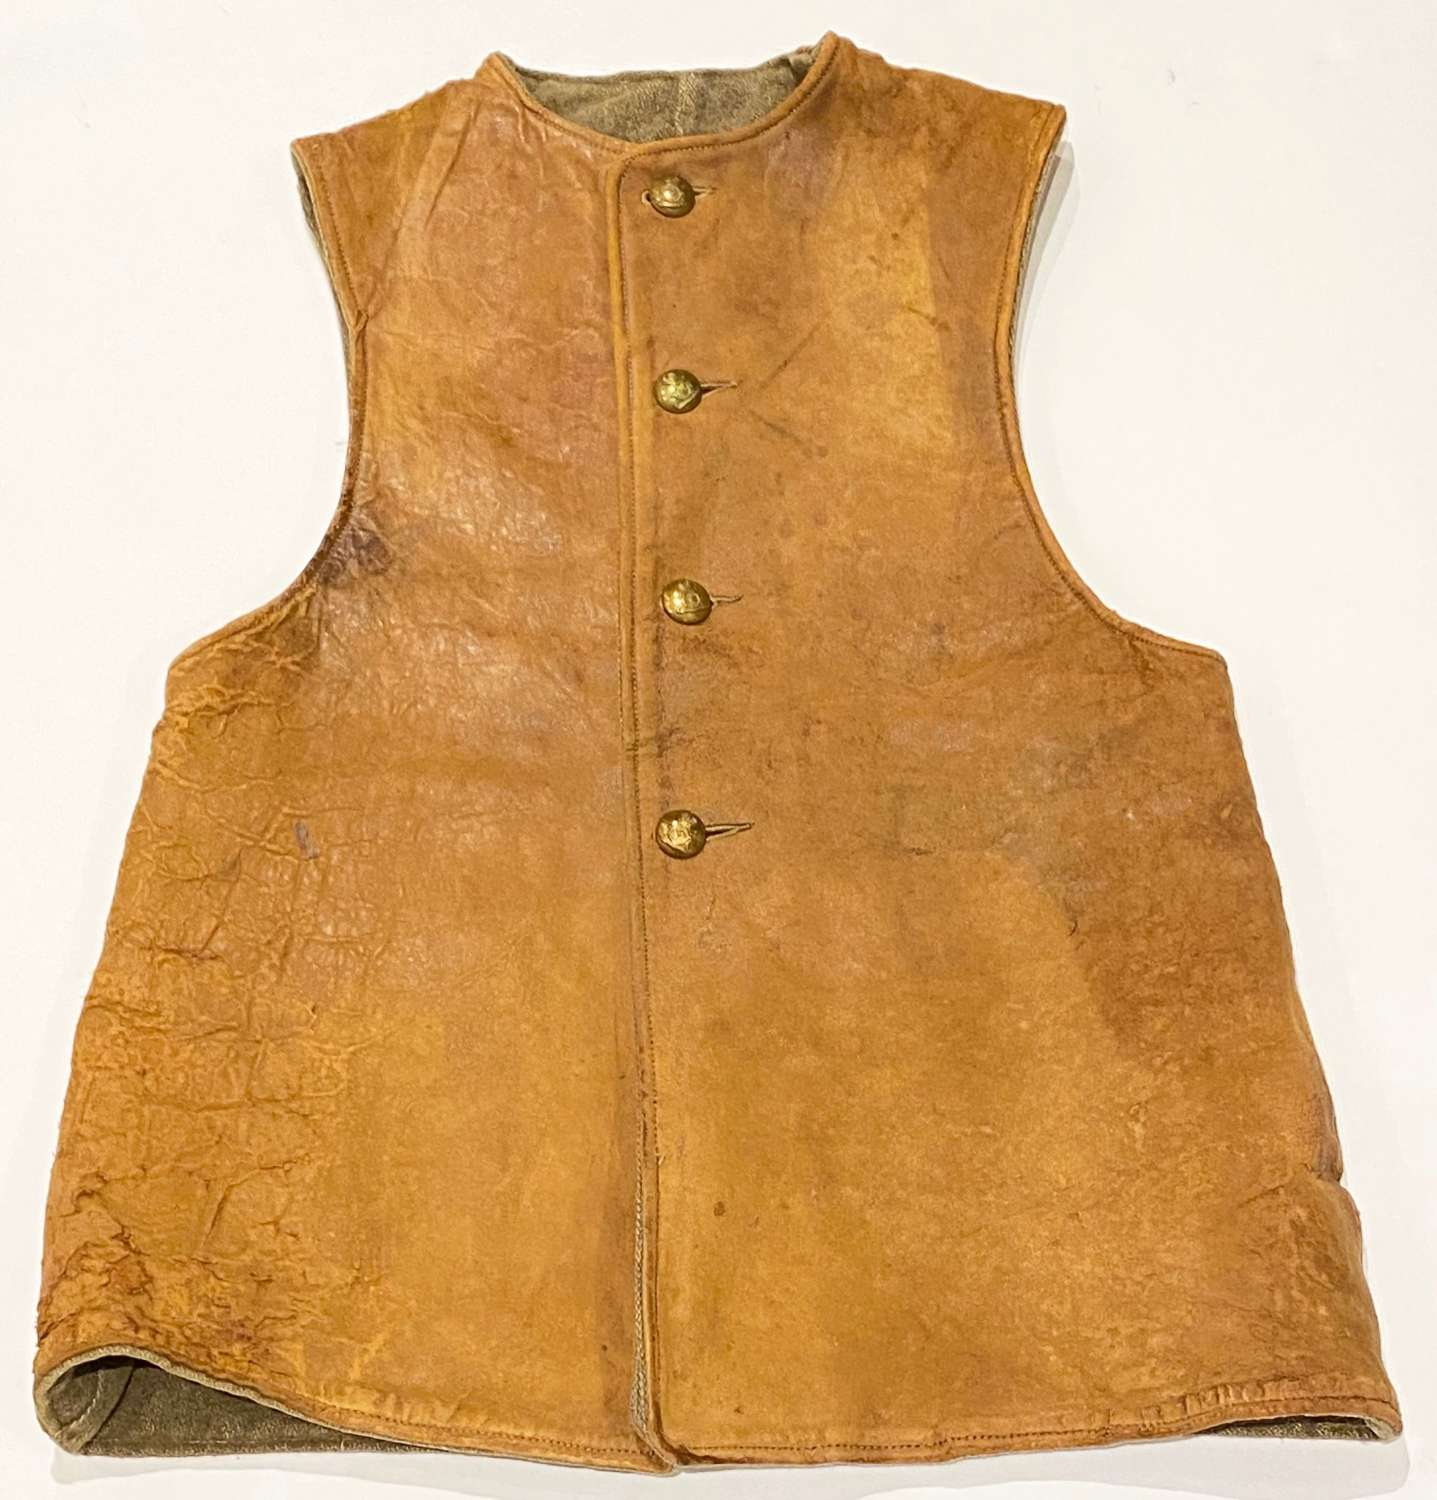 WW1 Period Leather Jerkin / Body Warmer.